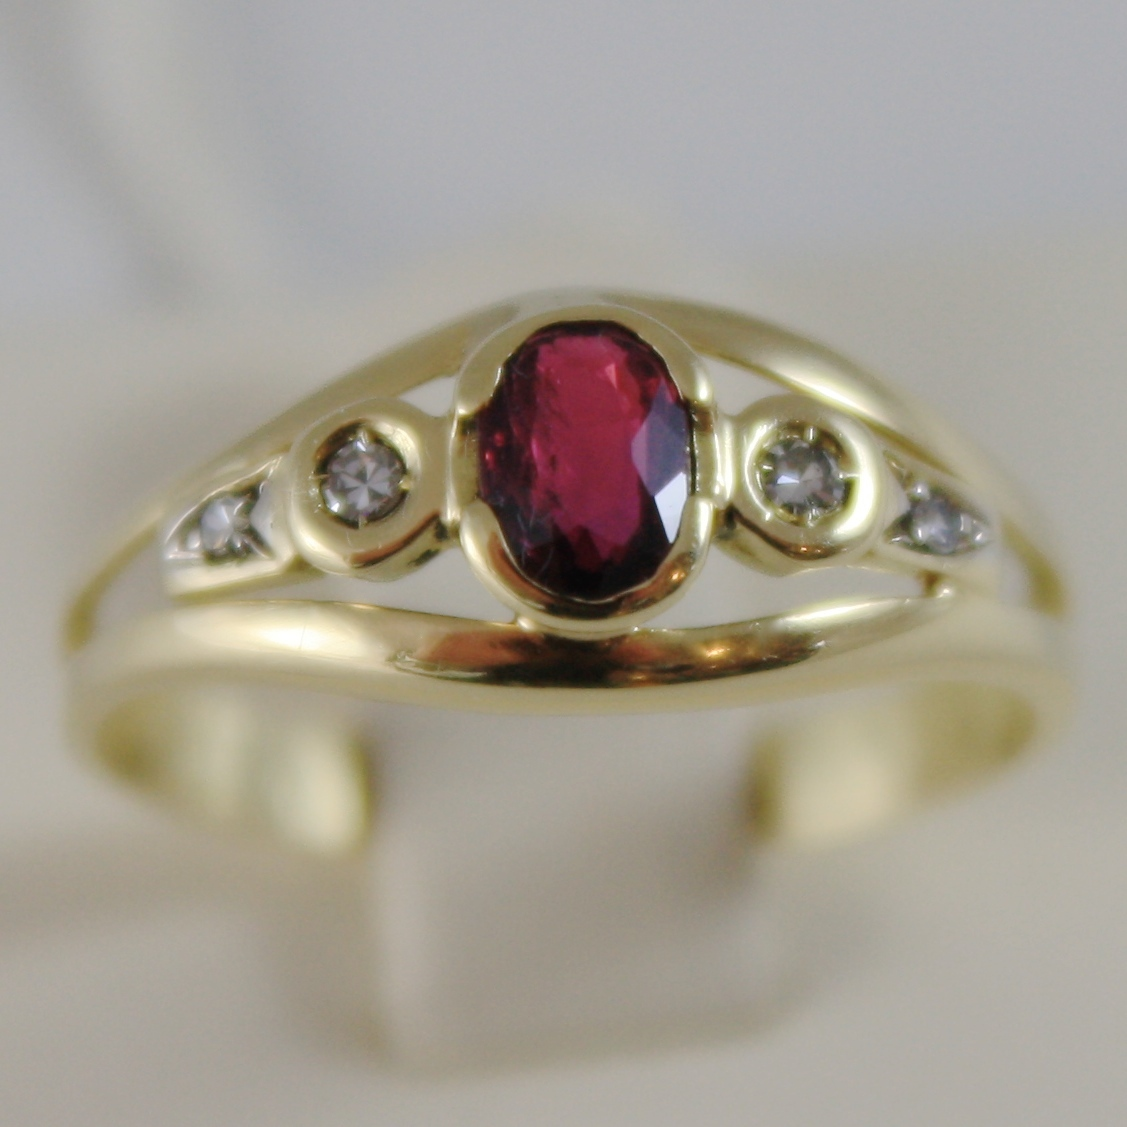 SOLID 18K YELLOW GOLD RING WITH DIAMOND AND RED RUBY OVAL CUT, MADE IN ITALY